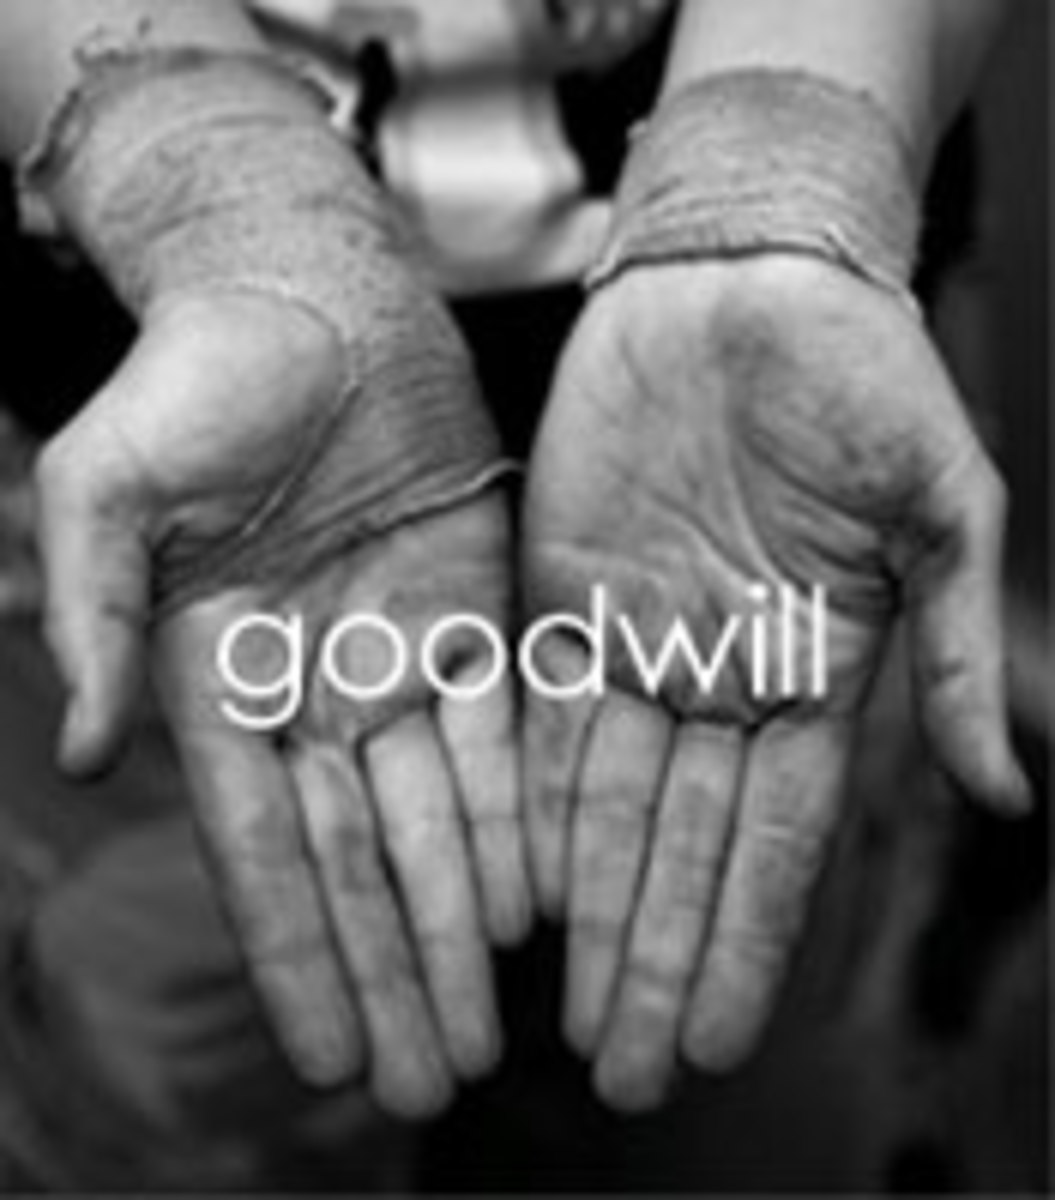 goodwill_and_hands